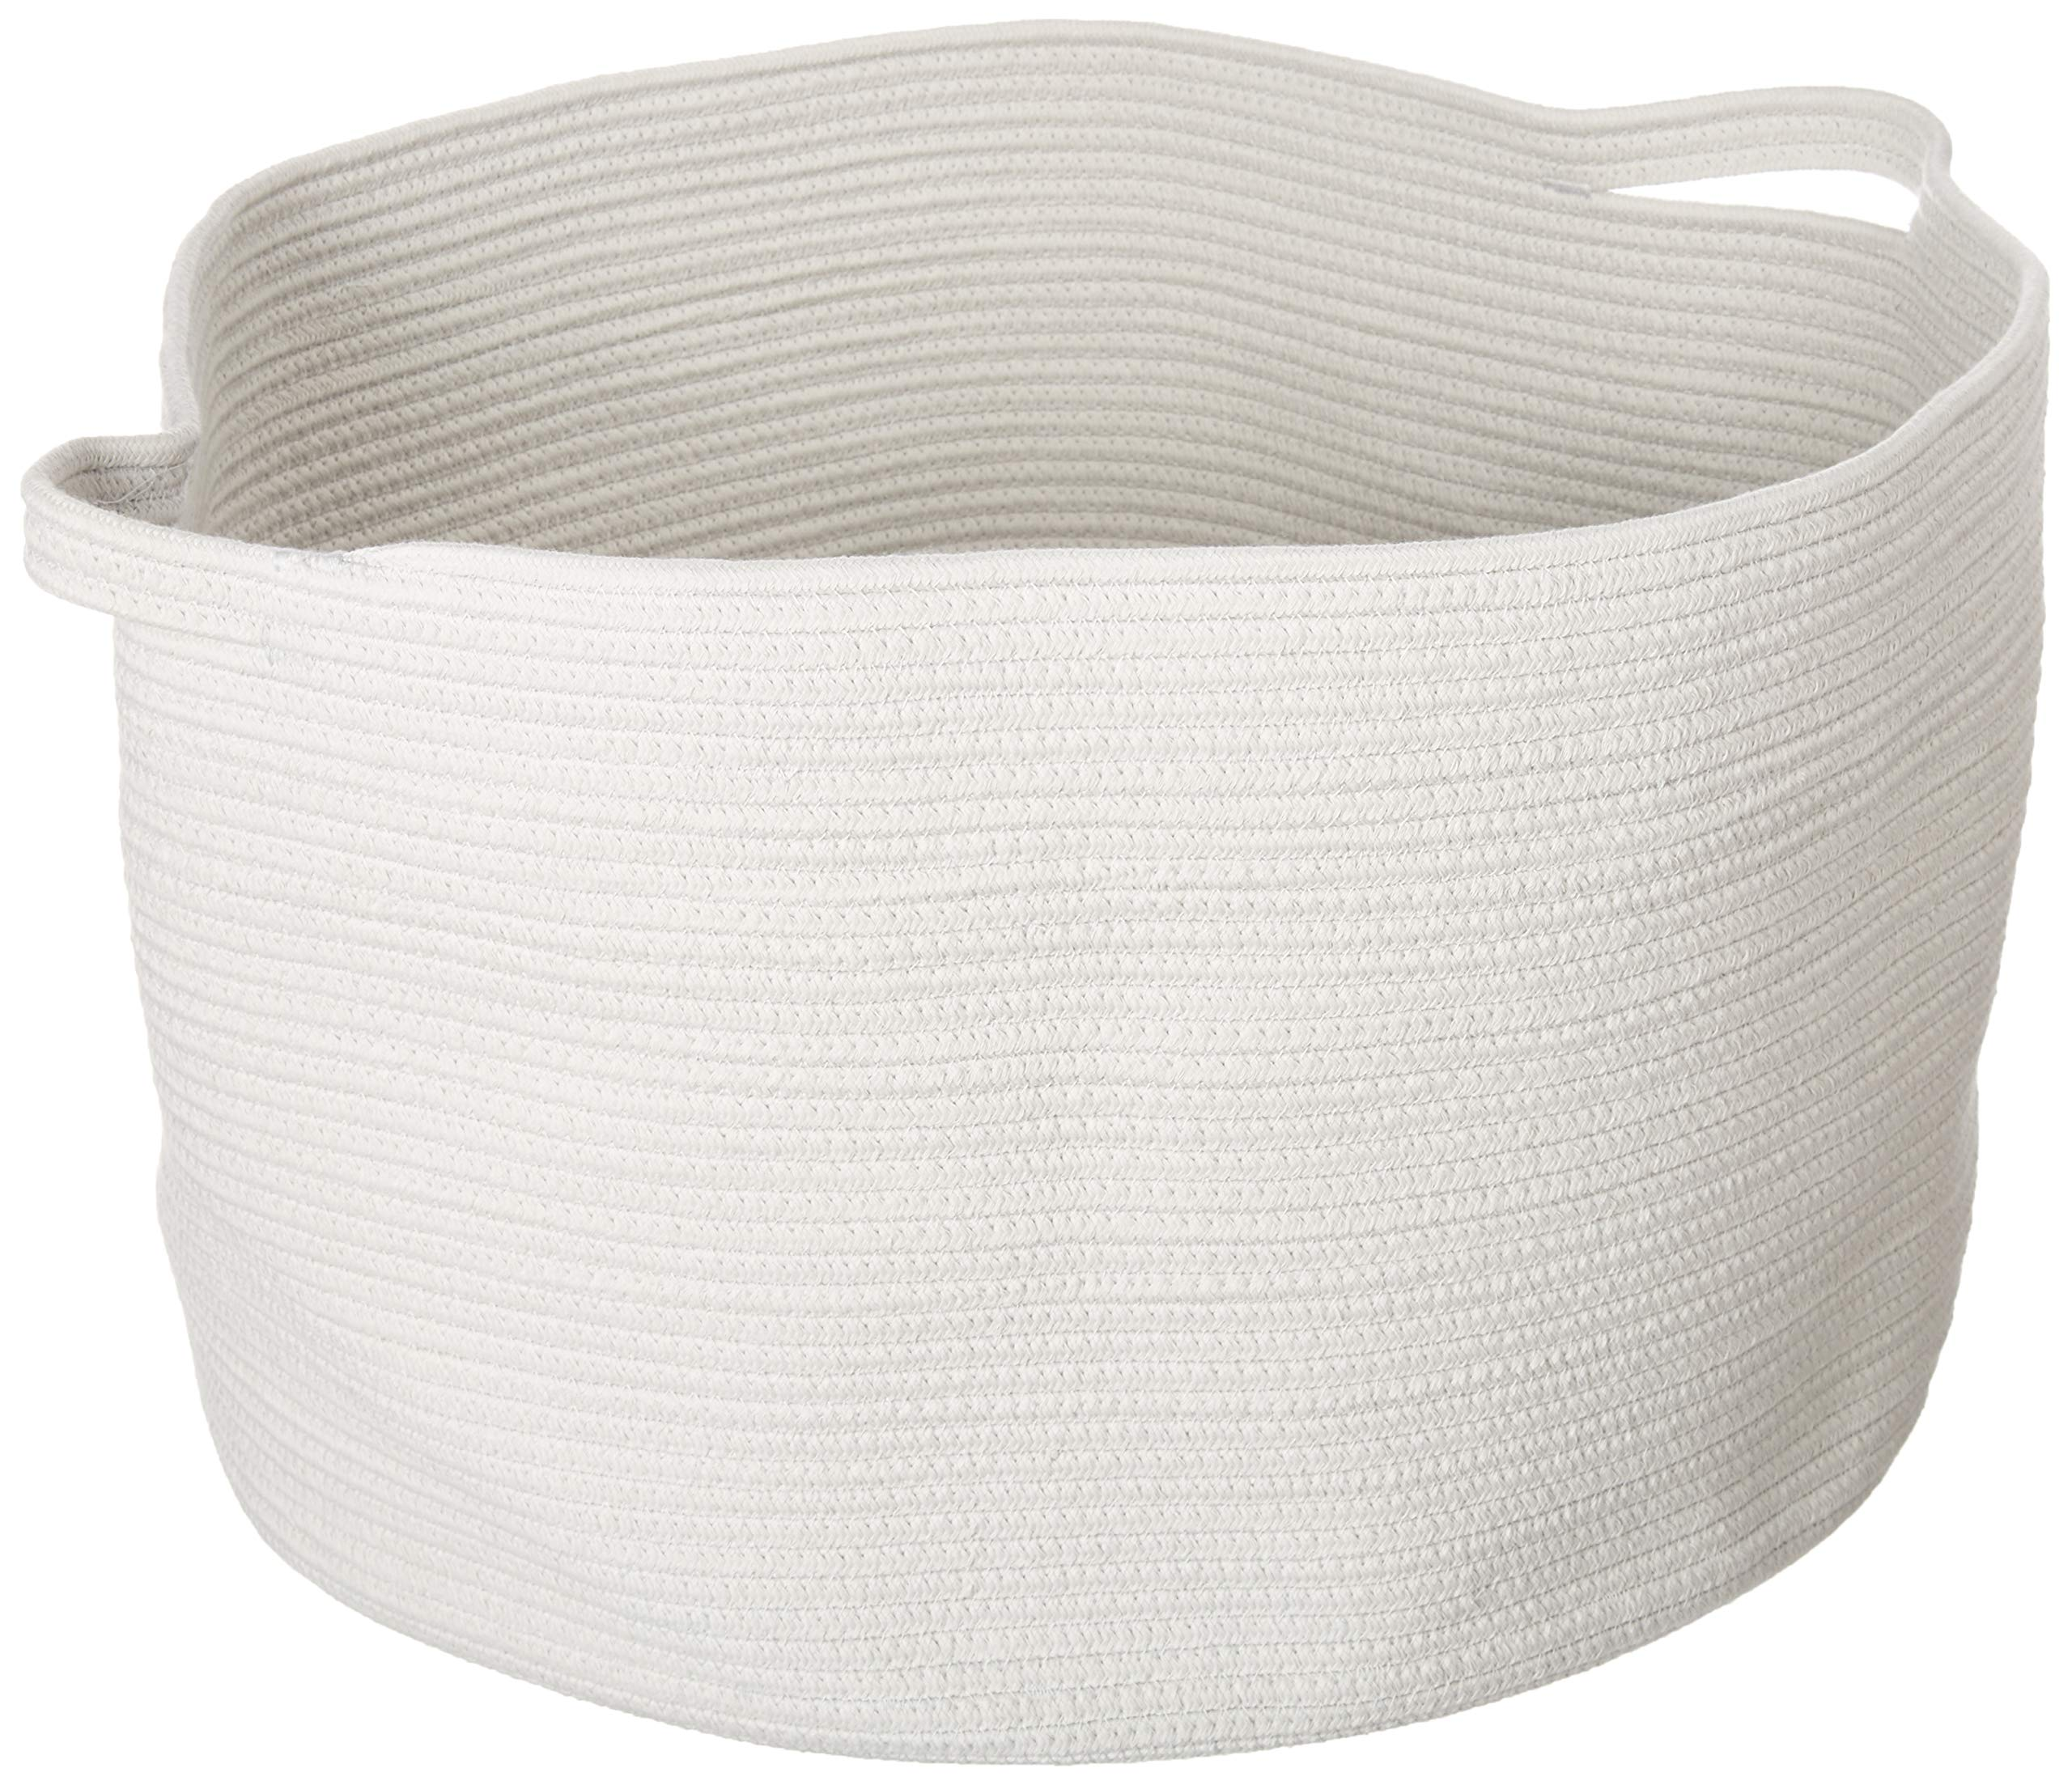 Zozha XXX Large Woven Cotton Round Storage Rope Basket with Handles 23.6 inches x 14.2 inches Foldable Perfect for Laundry Hamper Blankets Pillows Towels Toys Ice Gray with White Stitching by Zozha Home Goods